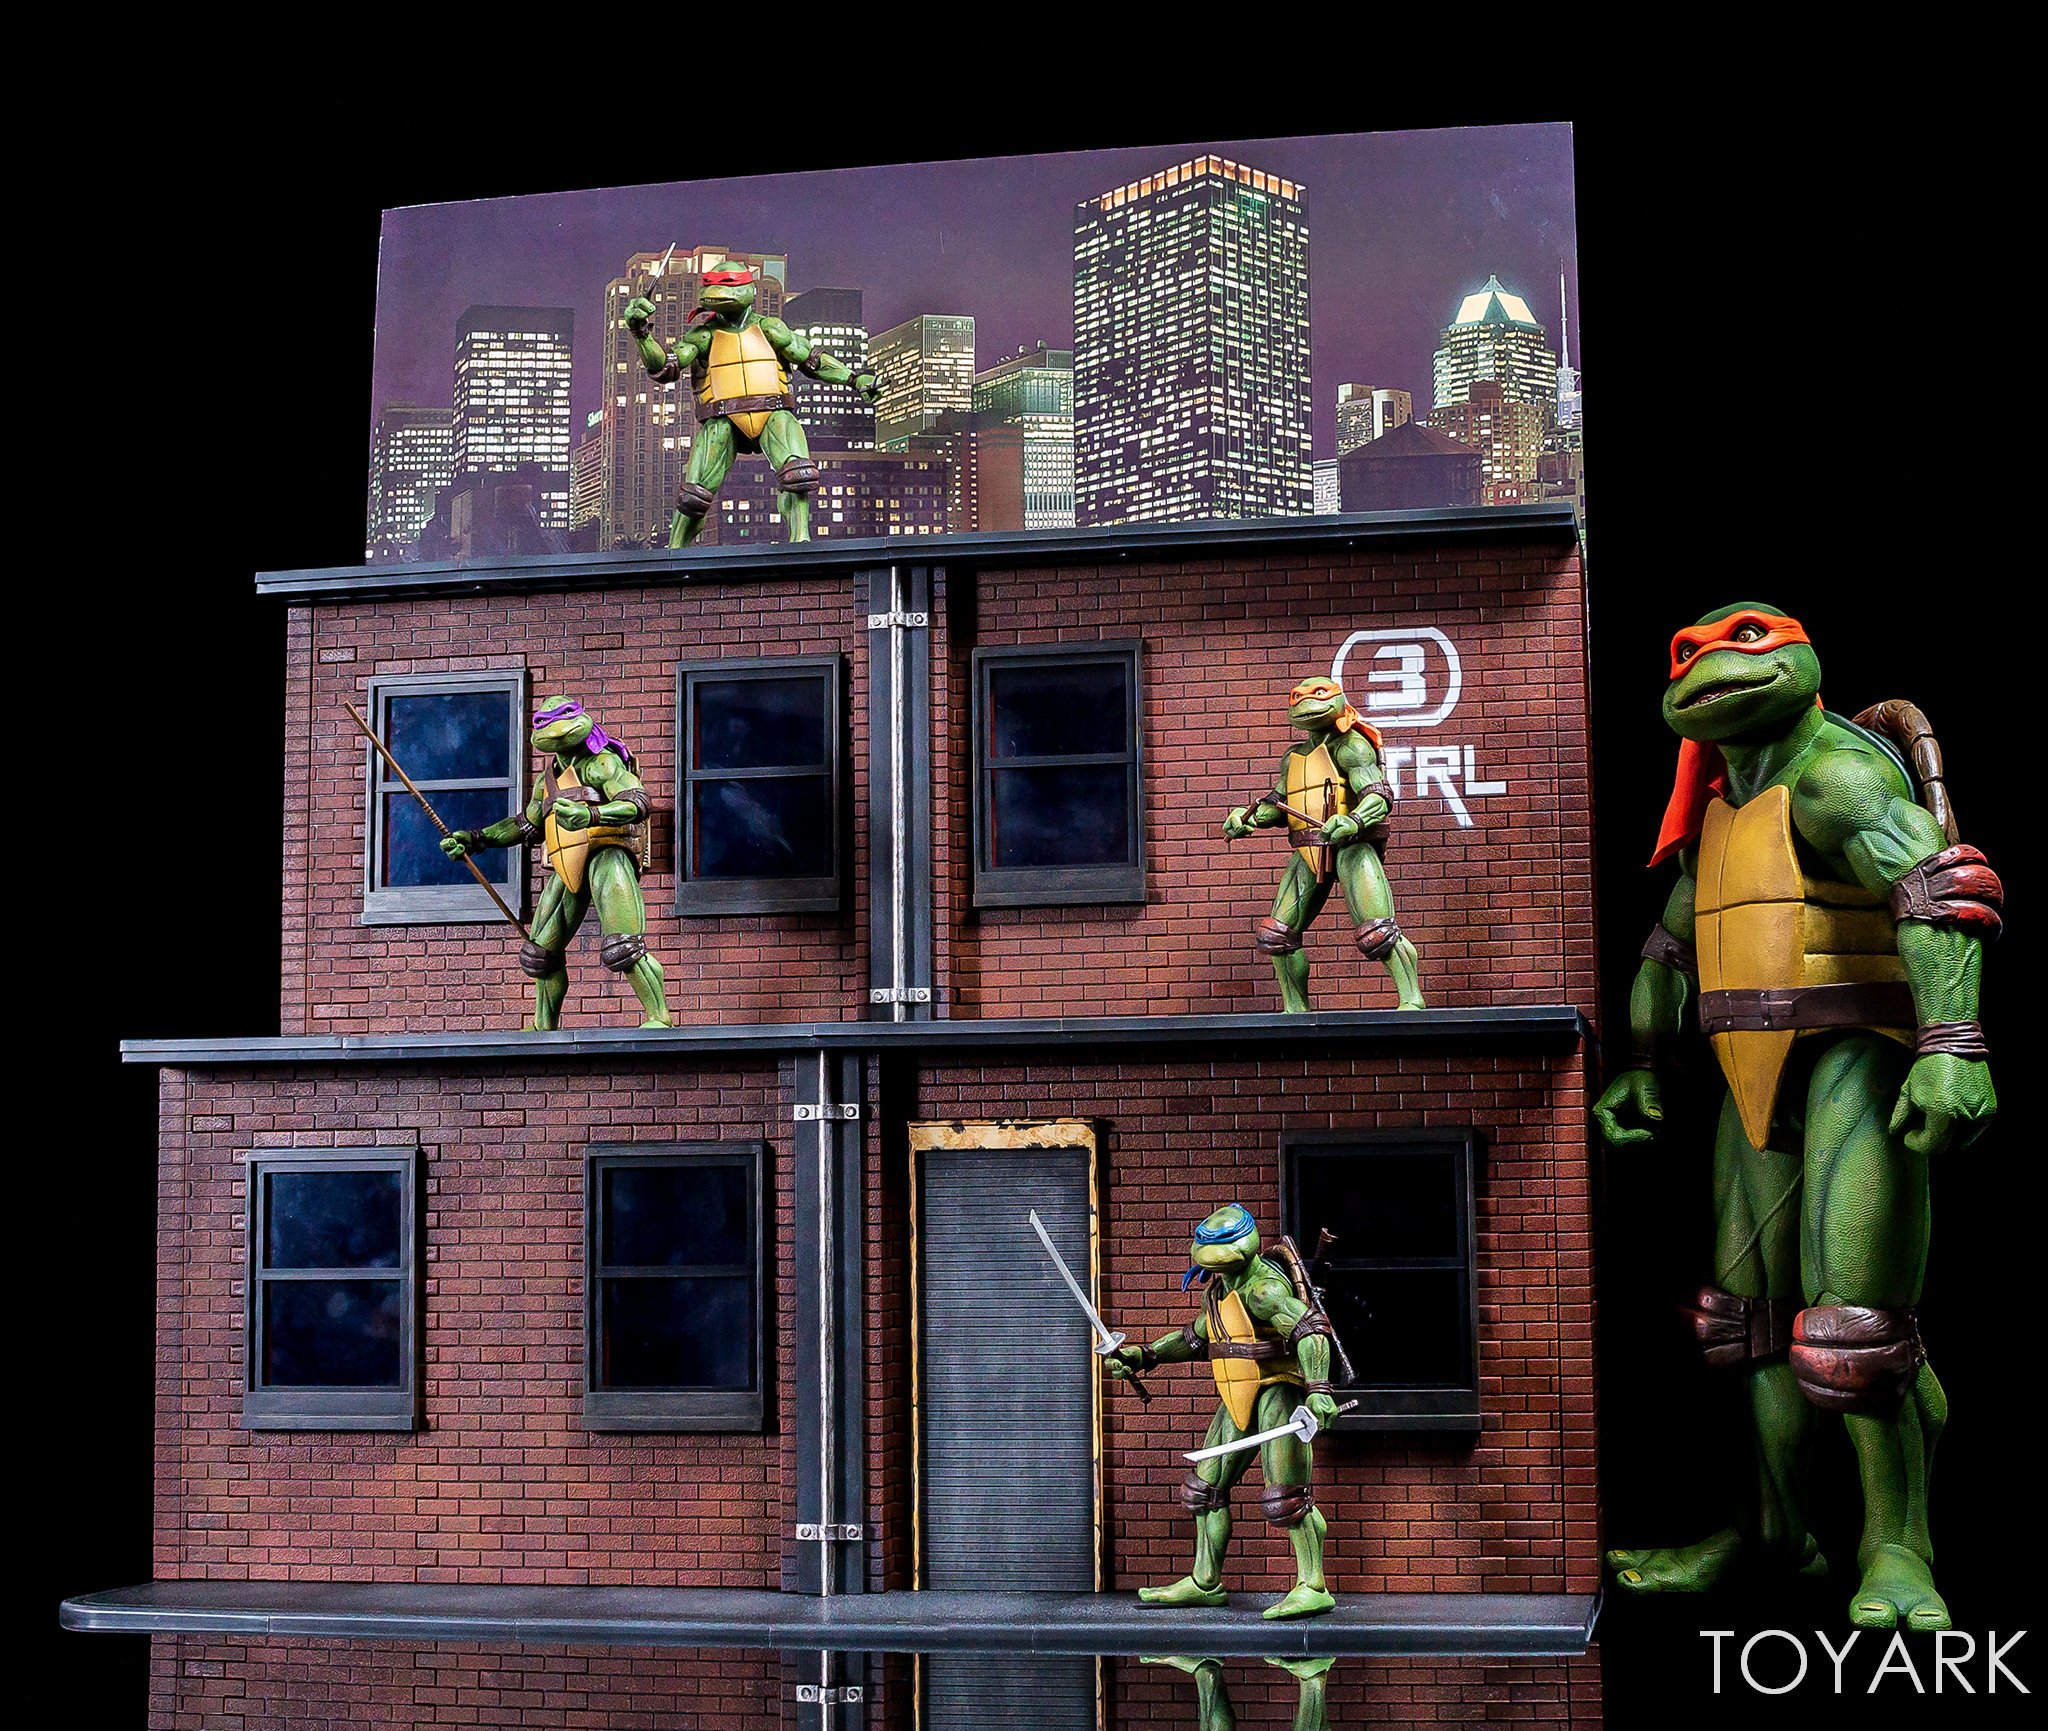 https://news.toyark.com/wp-content/uploads/sites/4/2018/07/NECA-TMNT-1990-and-Dio-Set-084.jpg